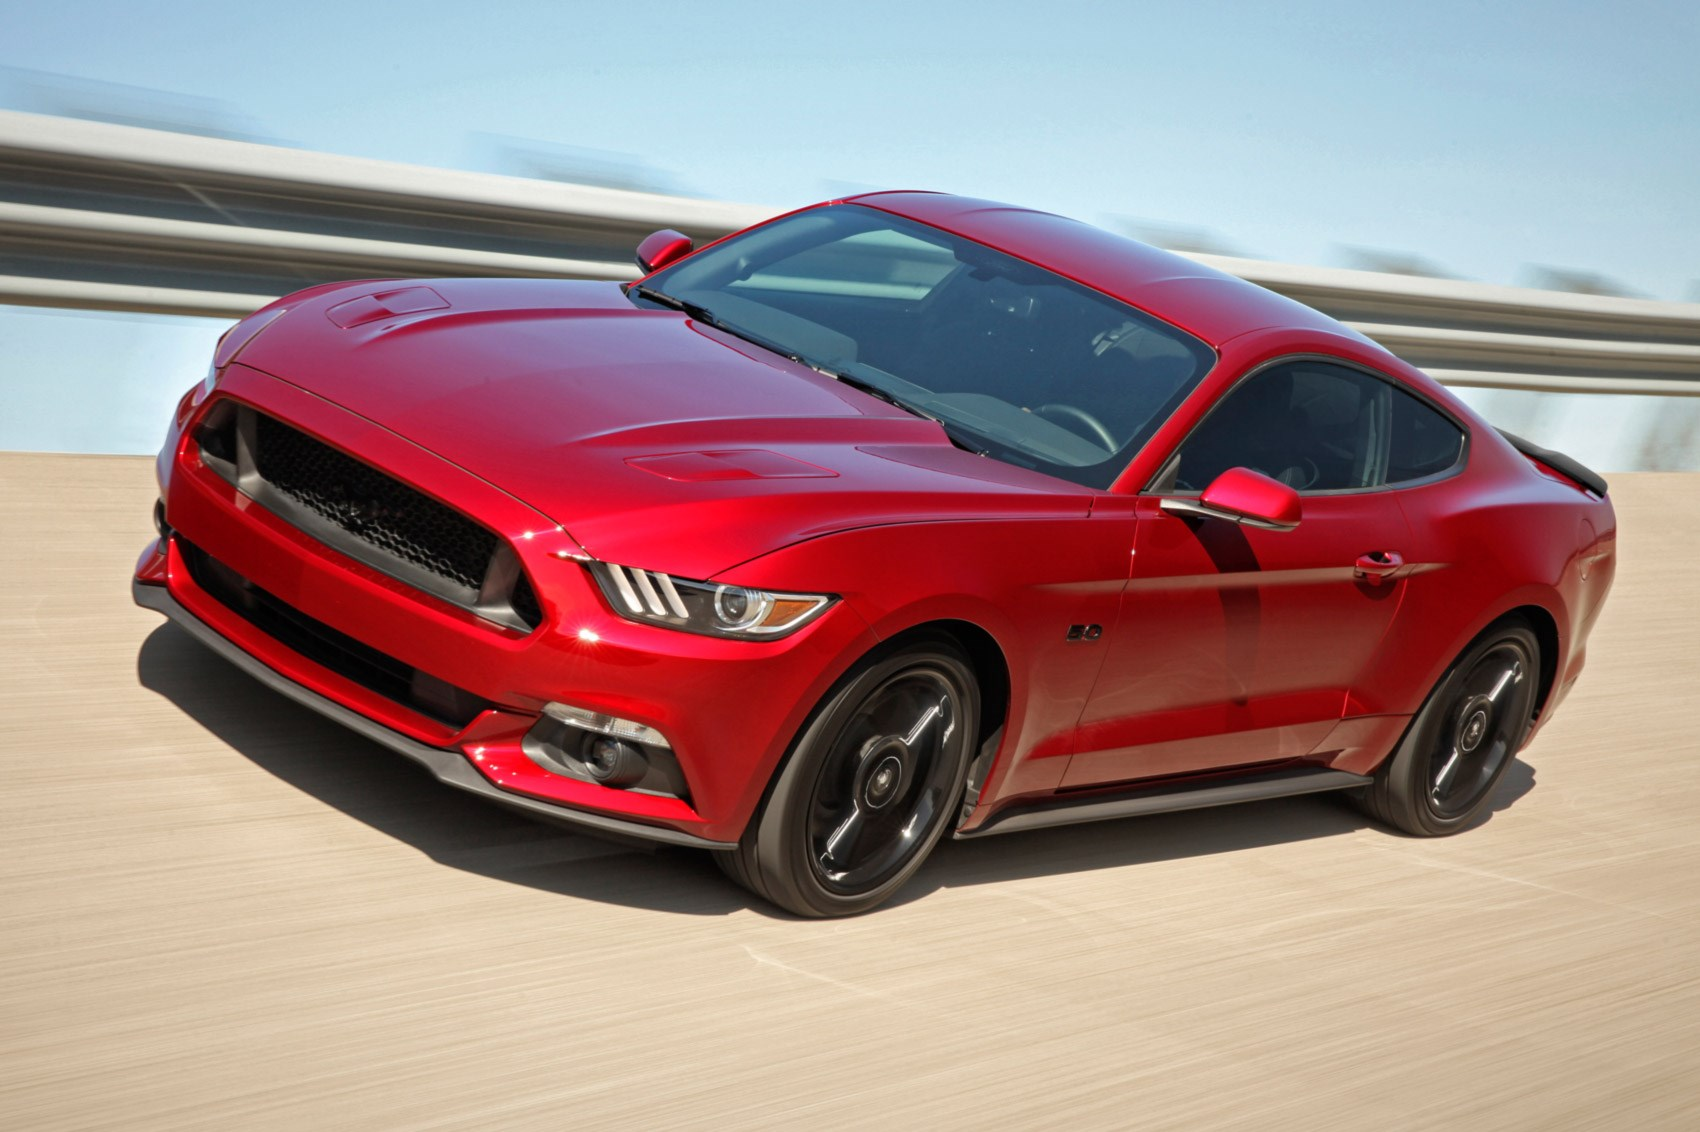 The latest Mustang is the first one that us UK folk have been able to get in right-hand drive